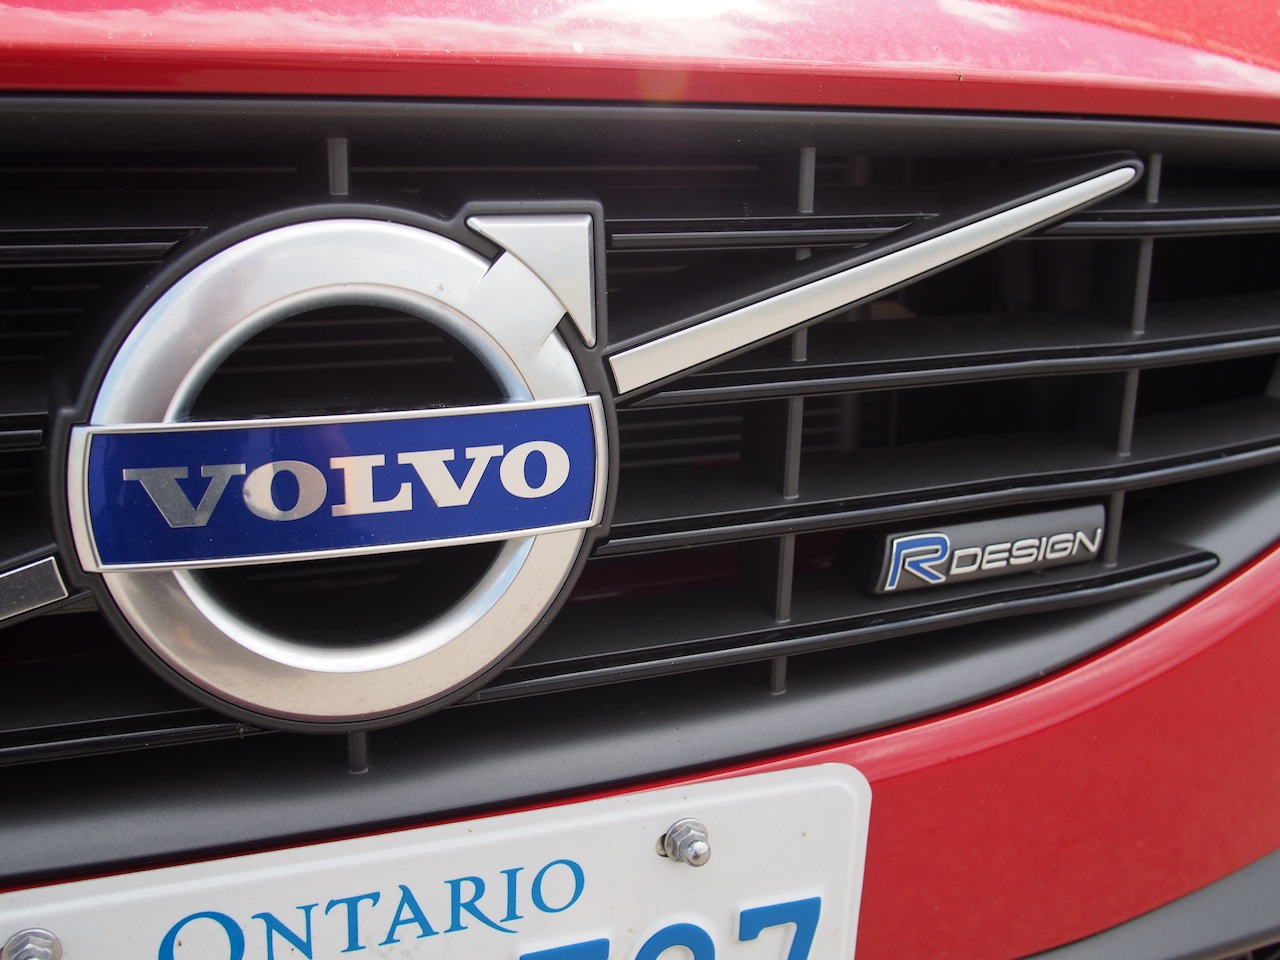 2015 Volvo V60 T6 R-Design Photoshoot - Cars, Photos, Test Drives, and Reviews   Canadian Auto ...